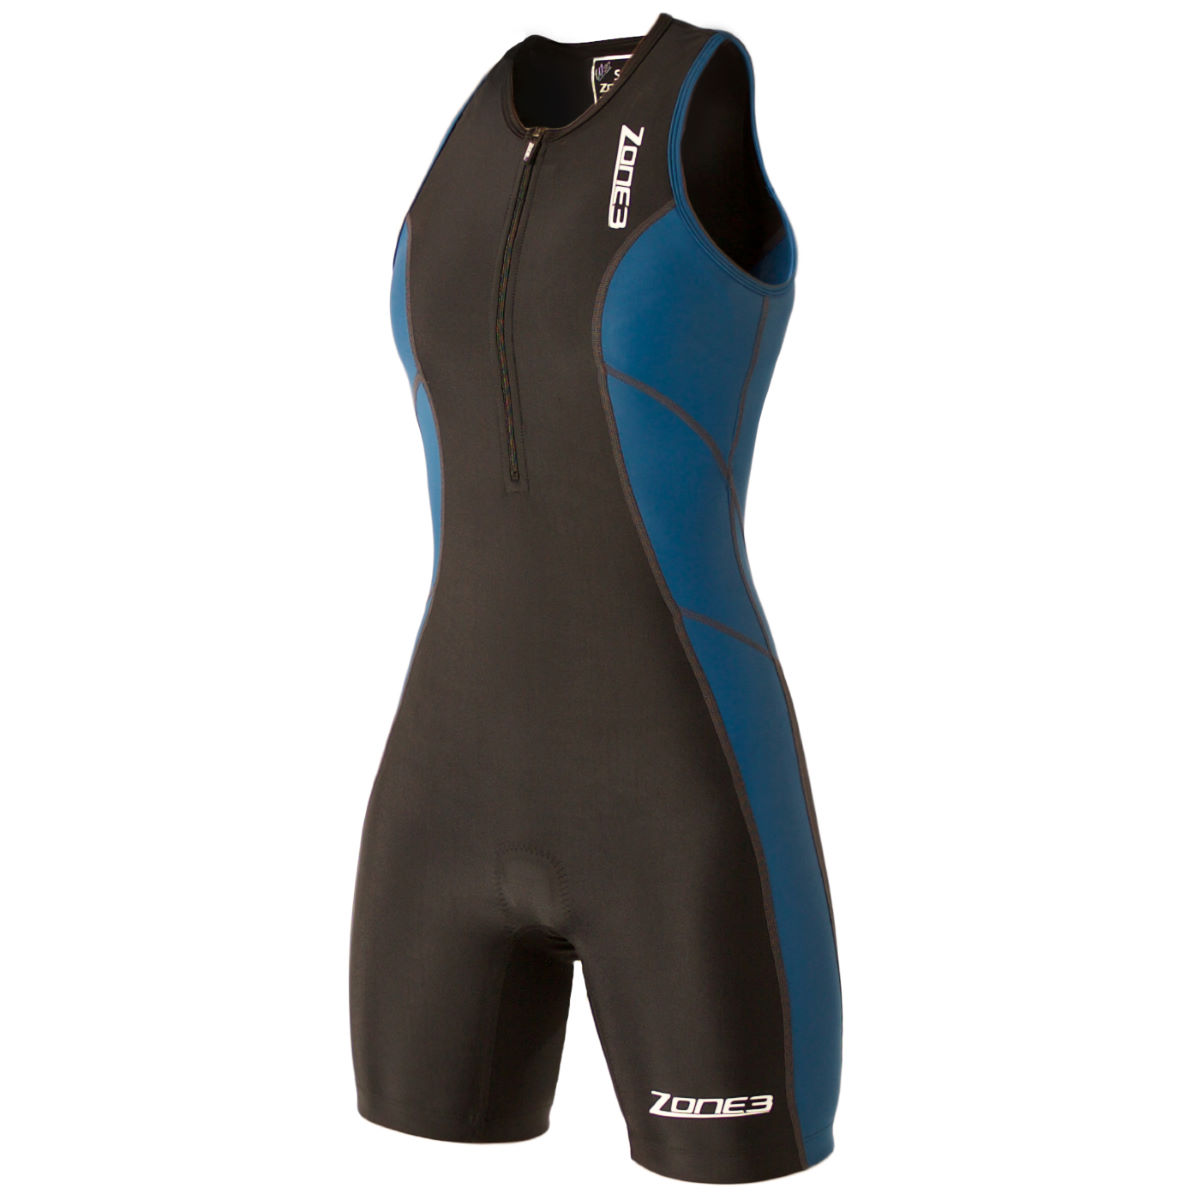 Zone3 Women's Wiggle Exclusive Activate Tri Suit 2015